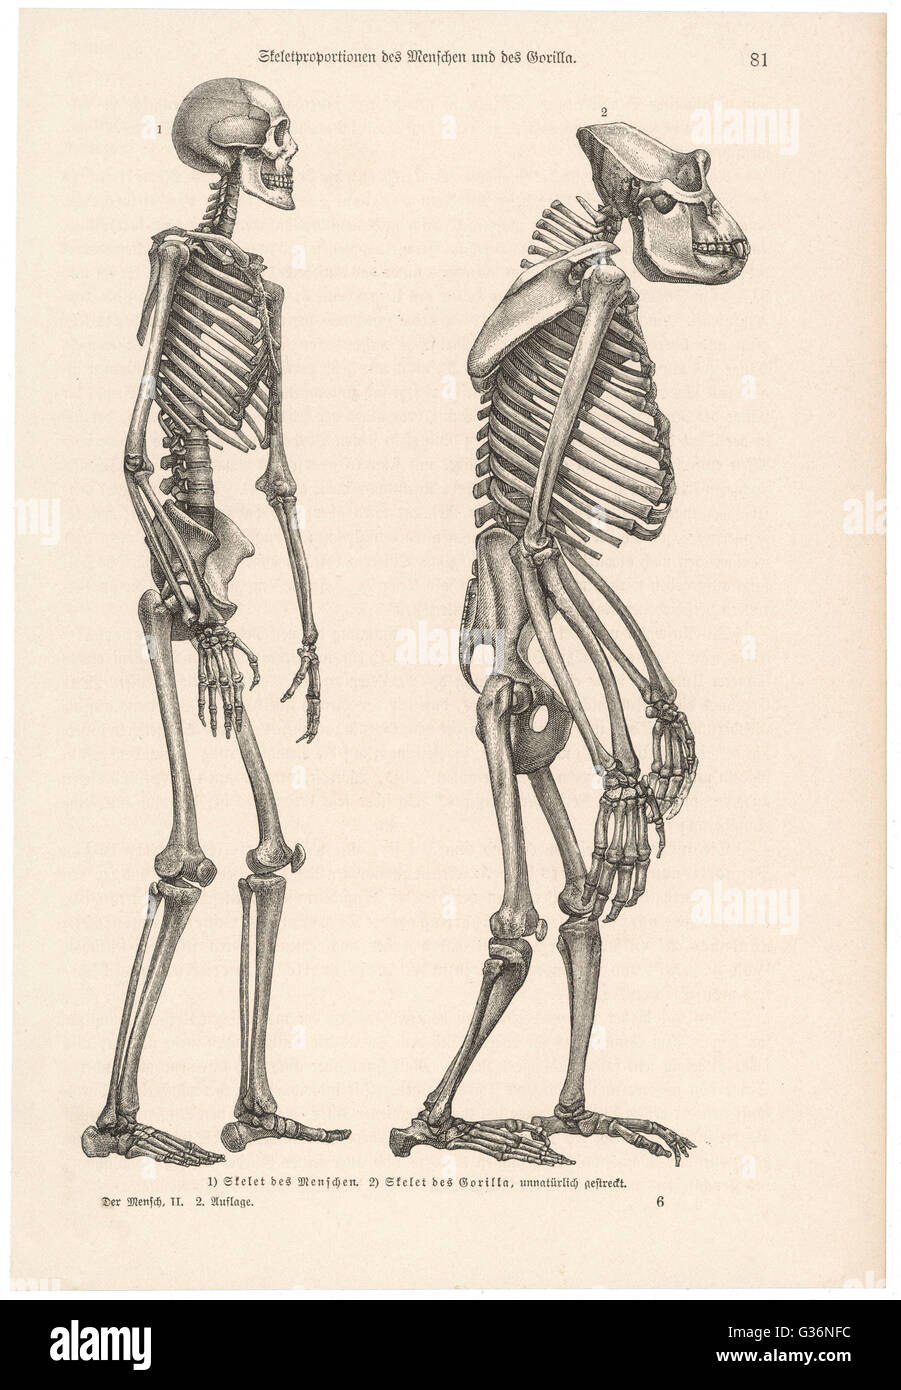 Skeleton Of A Human Stock Photos & Skeleton Of A Human Stock Images ...